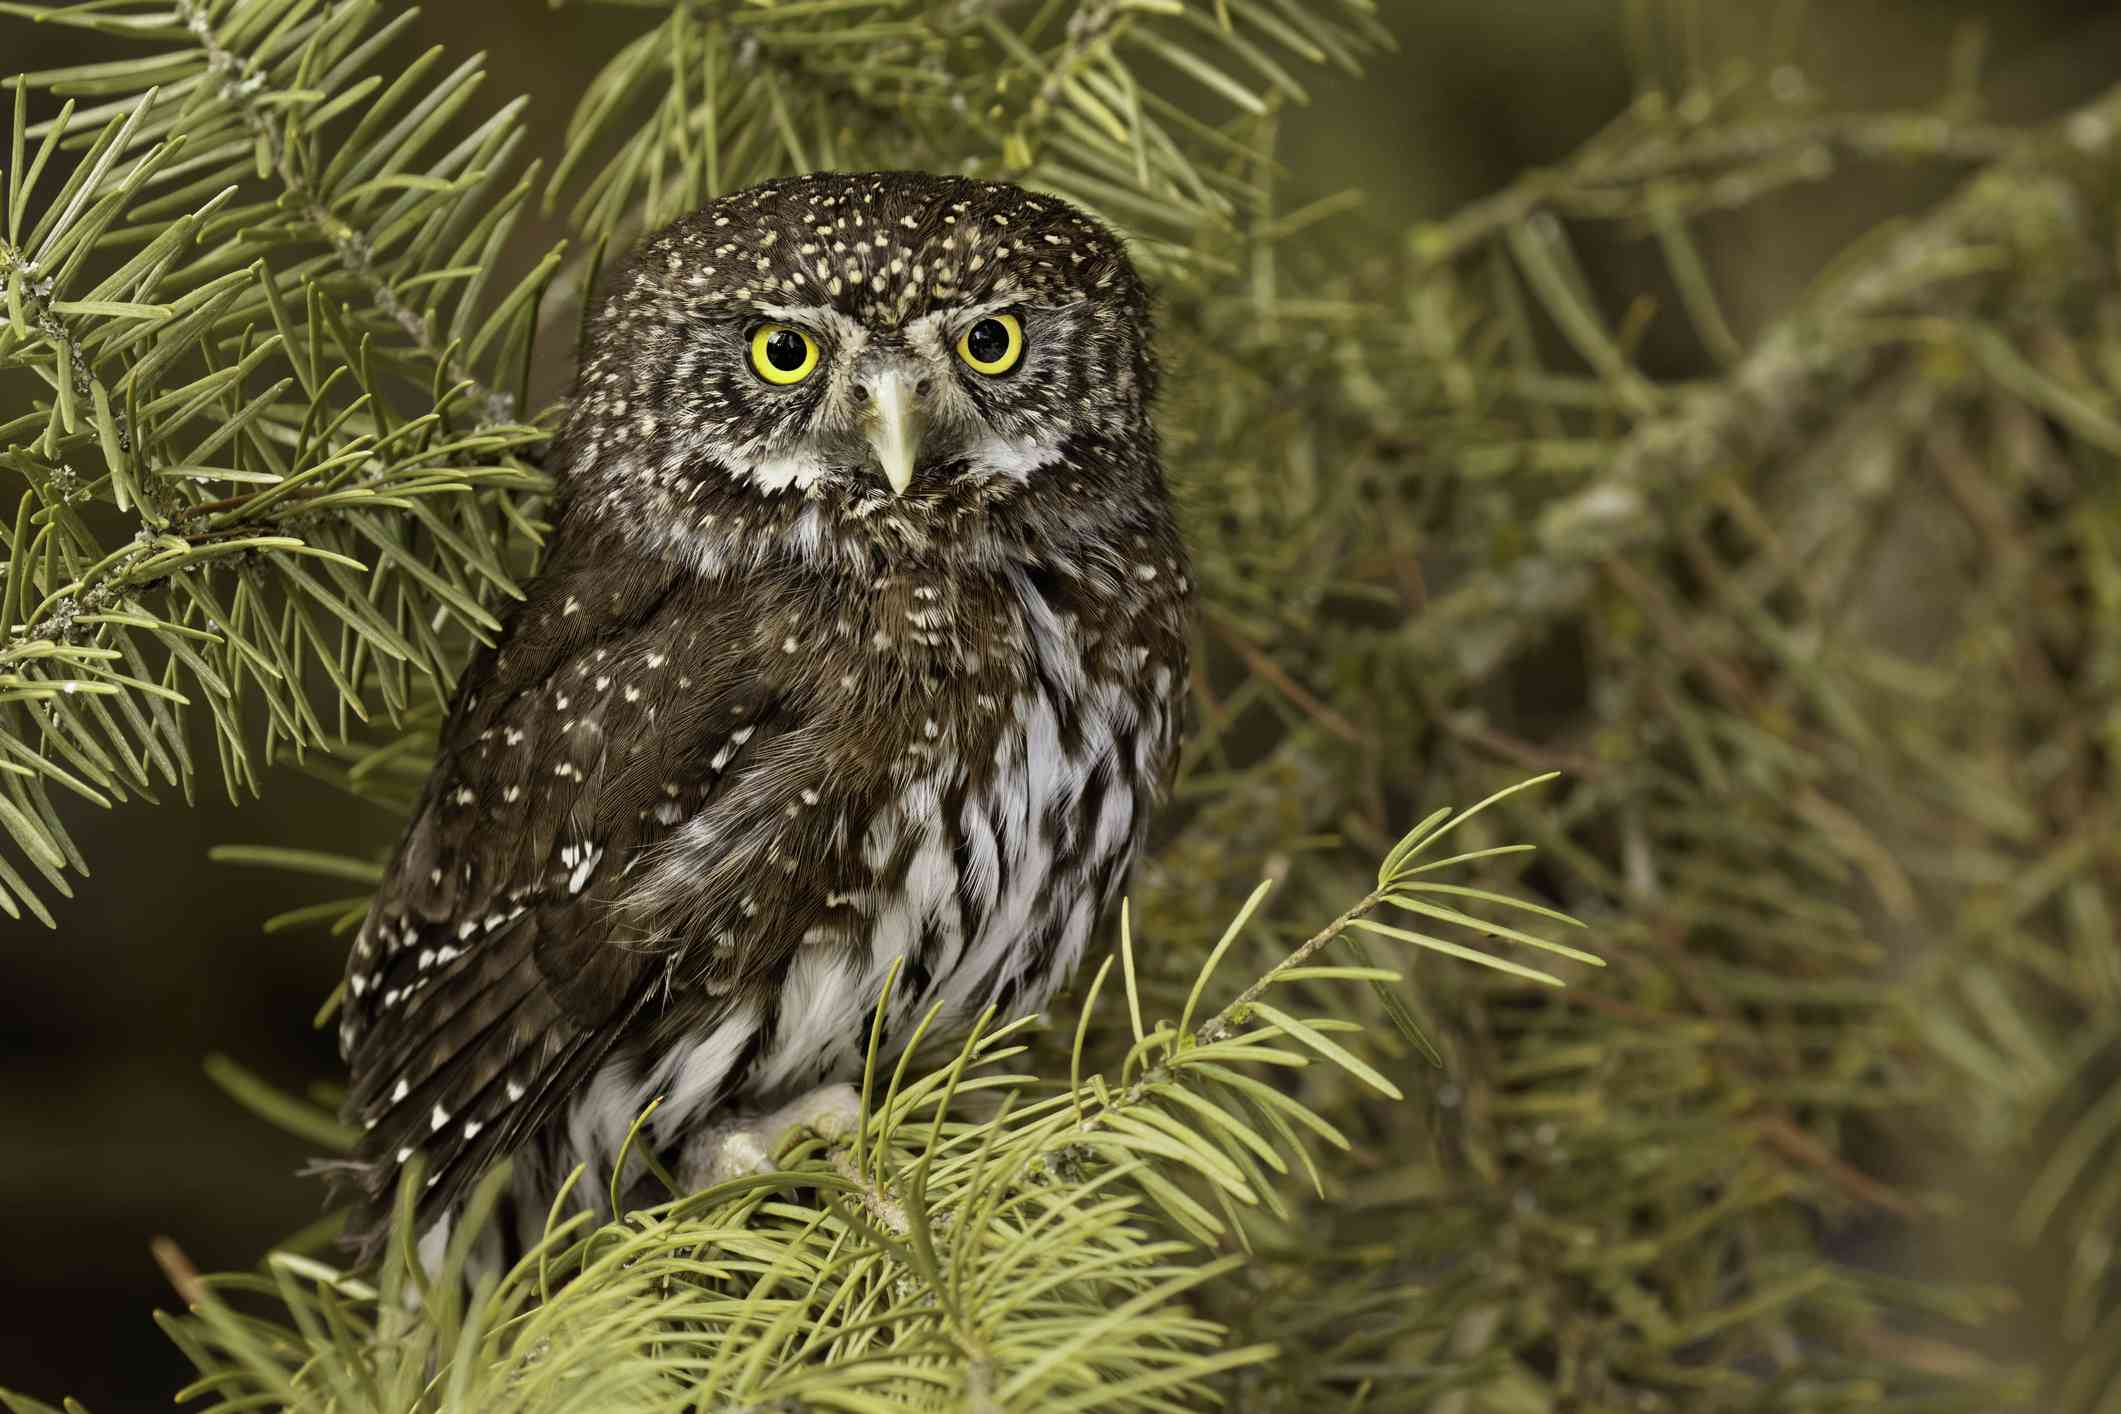 Northern pygmy owl in a tree